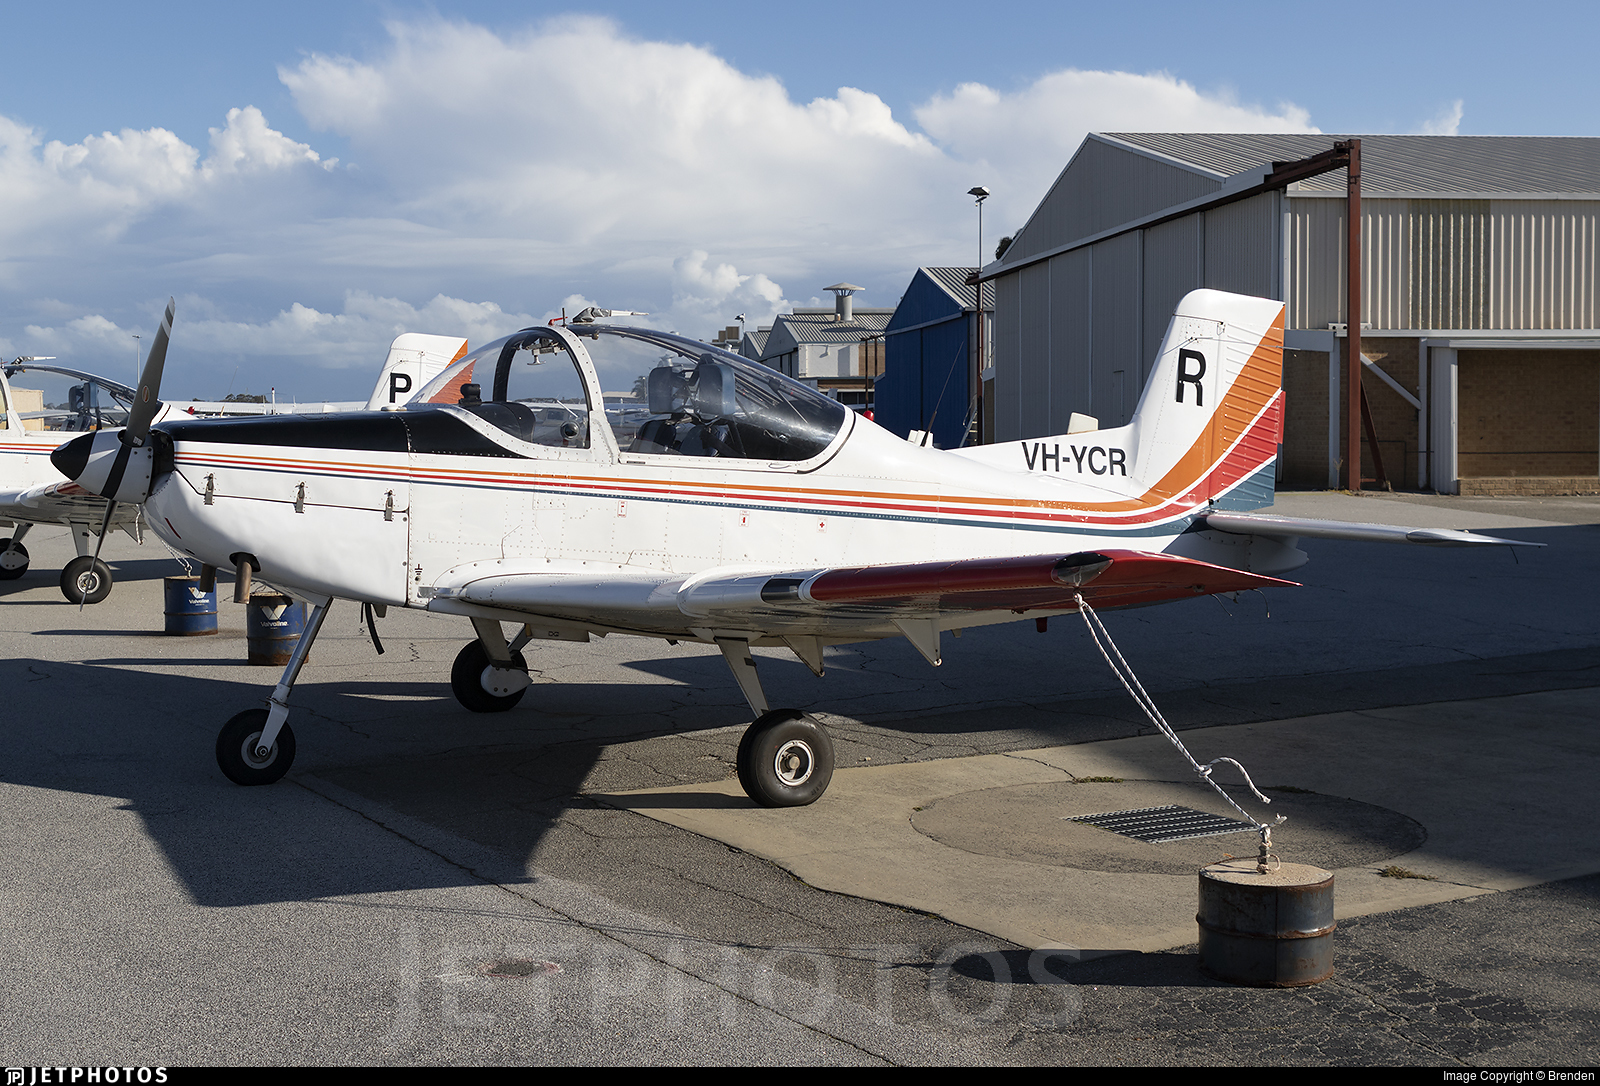 VH-YCR - Pacific Aerospace CT-4B Airtrainer - Pacific Flight Services